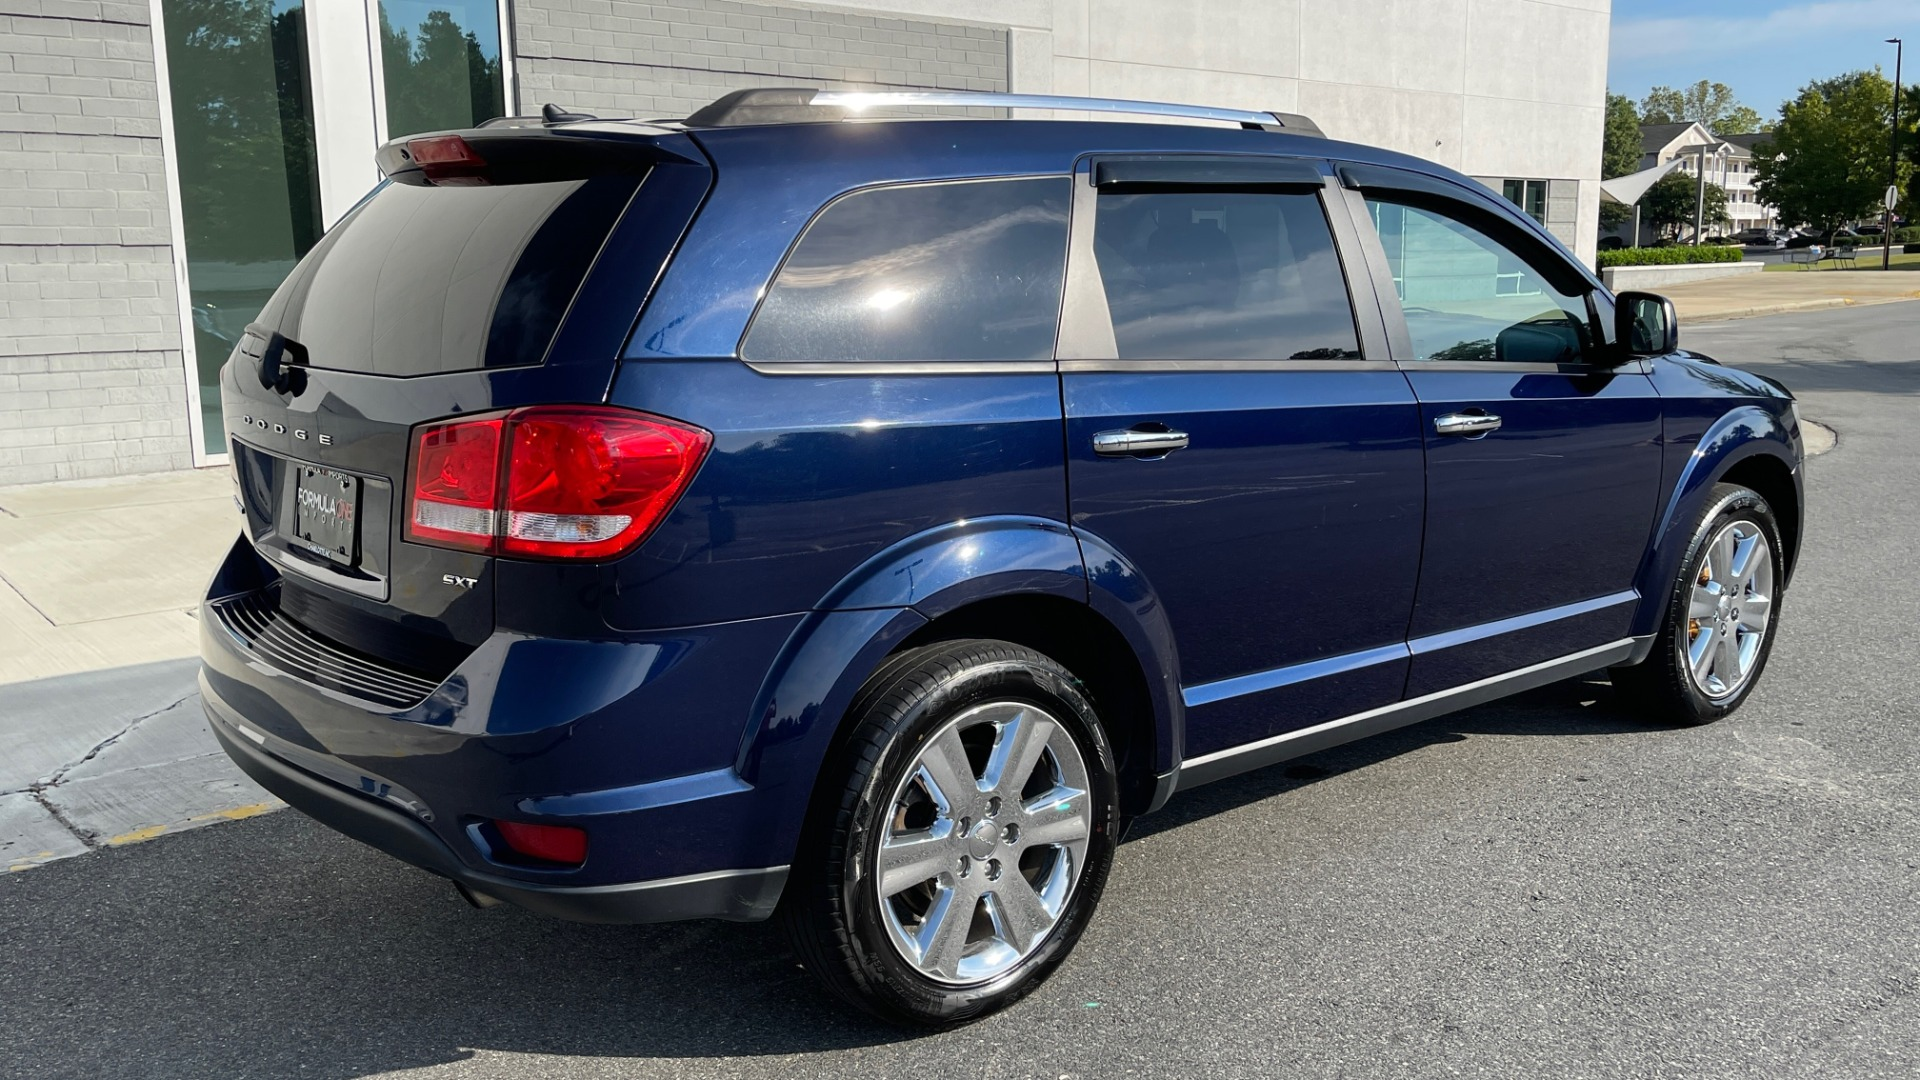 Used 2017 Dodge JOURNEY SXT PREMIUM / 2.4L / 4-SPD AUTO / KEYLESS-GO / 3-ROW / 19IN WHEELS for sale $15,995 at Formula Imports in Charlotte NC 28227 2